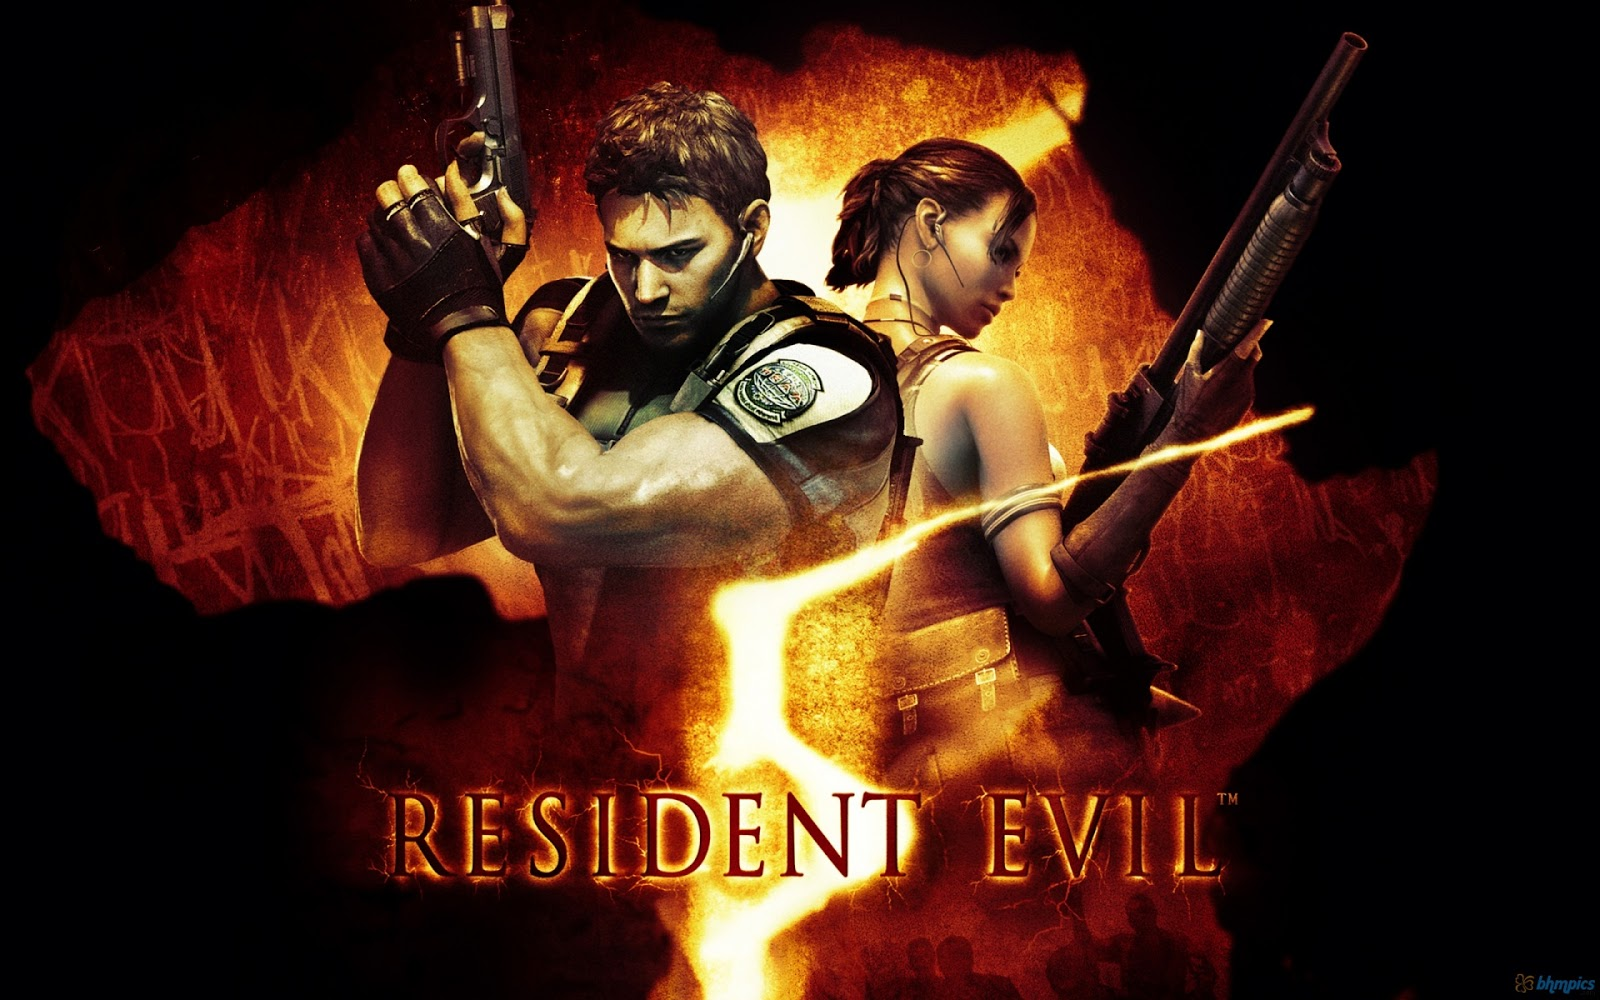 Resident Evil 5 PC Games Full Cheats and Hints ~ The King